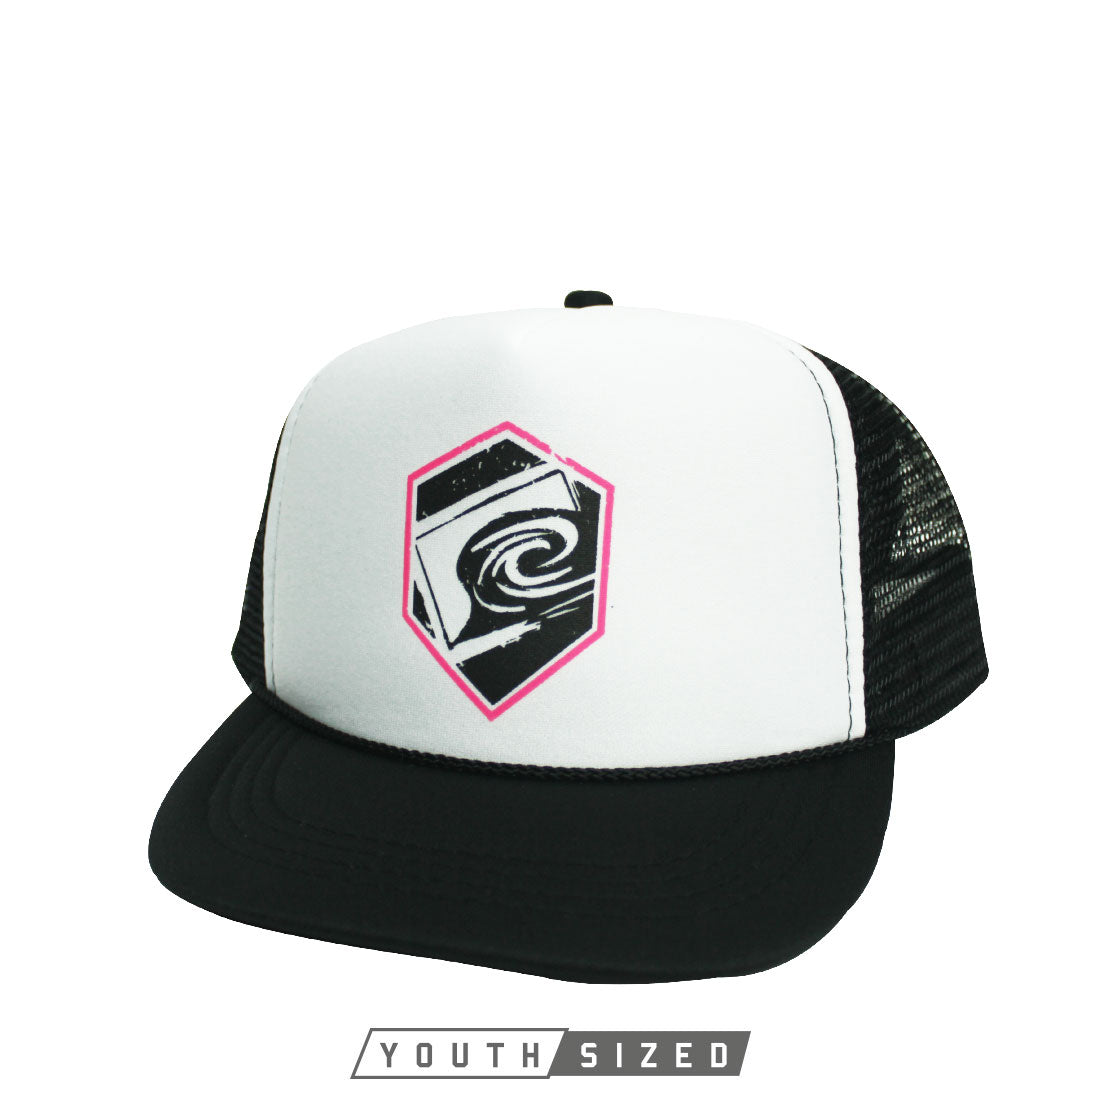 Valid Youth Curved Bill Trucker Hat in White Black